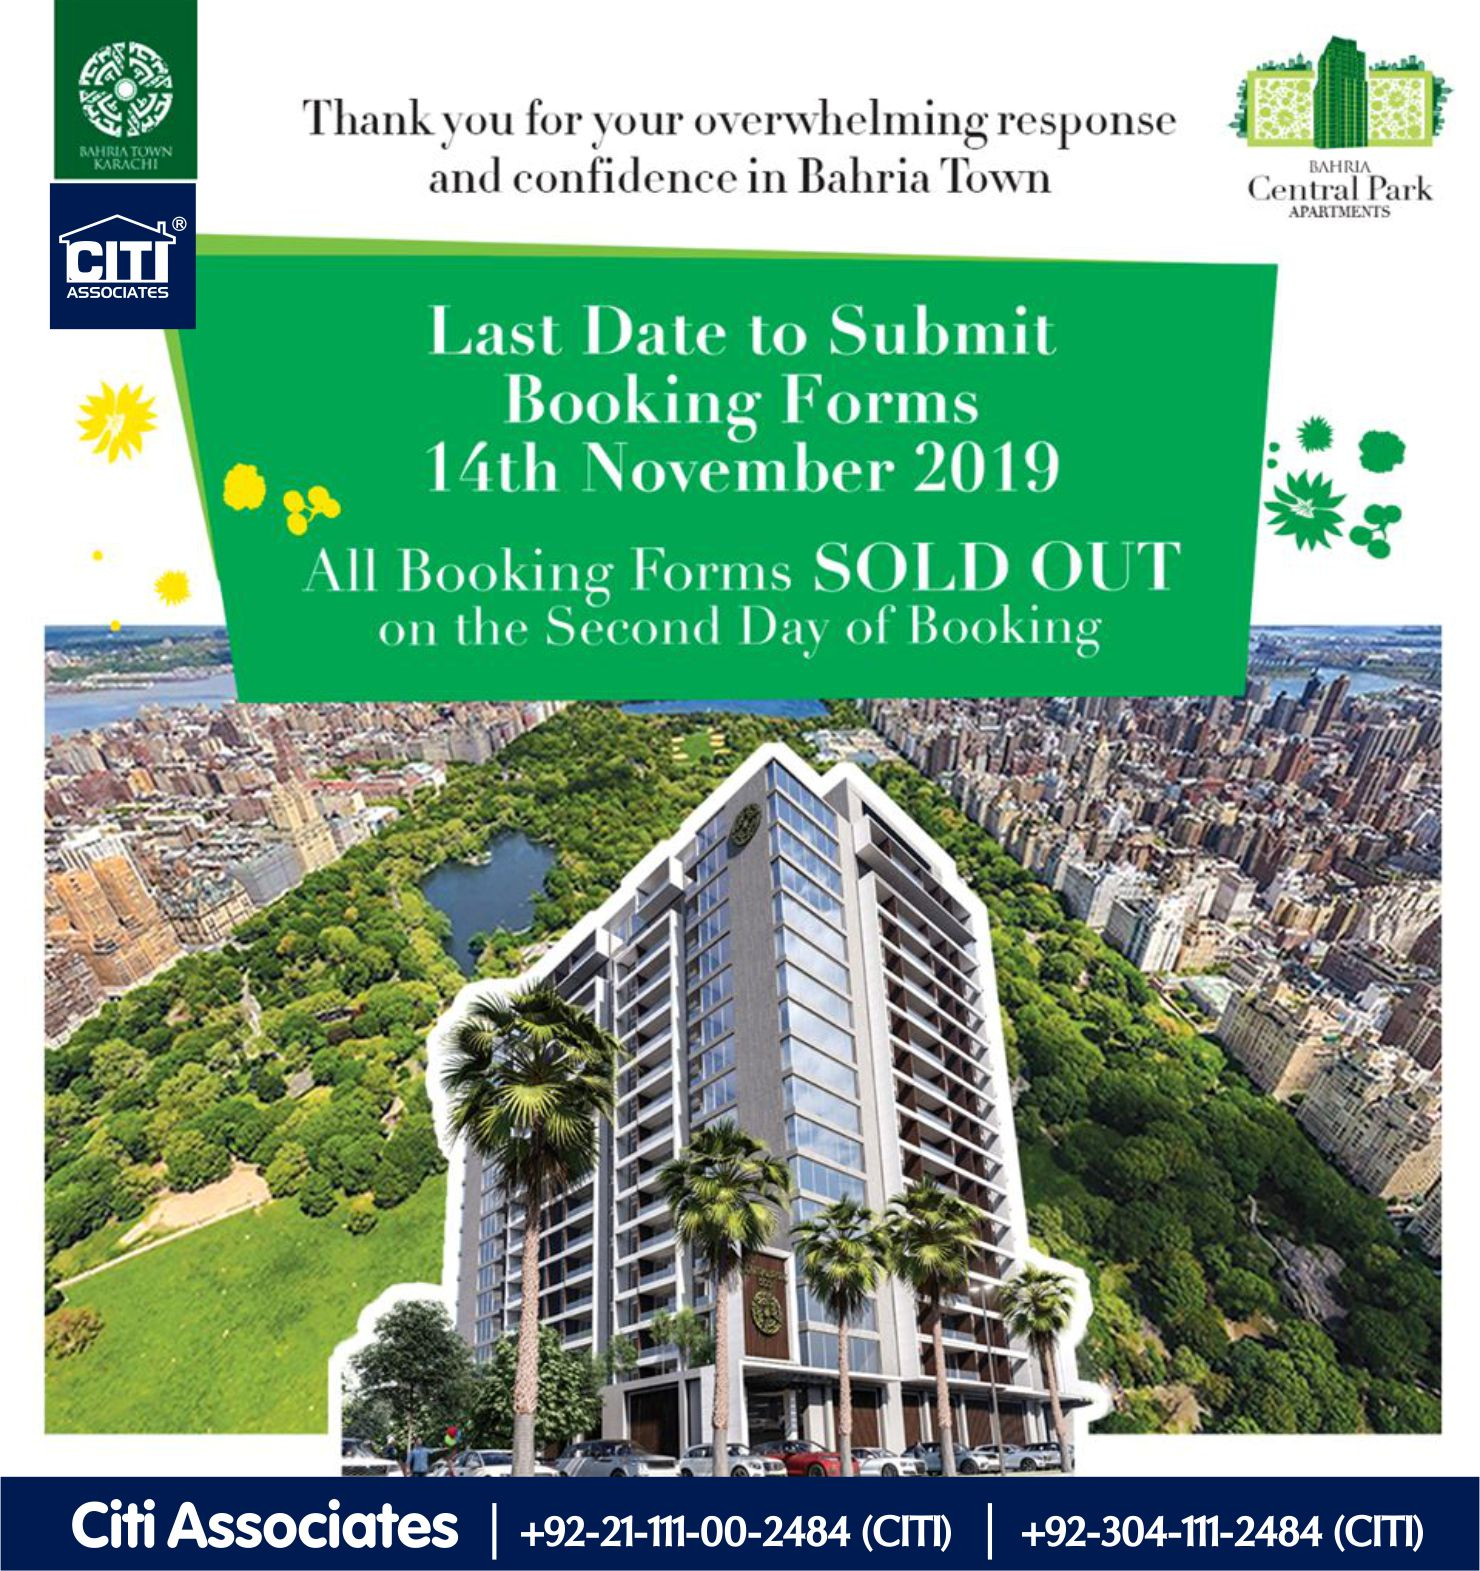 All Booking Forms SOLD OUT | Bahria Central Park Apartments